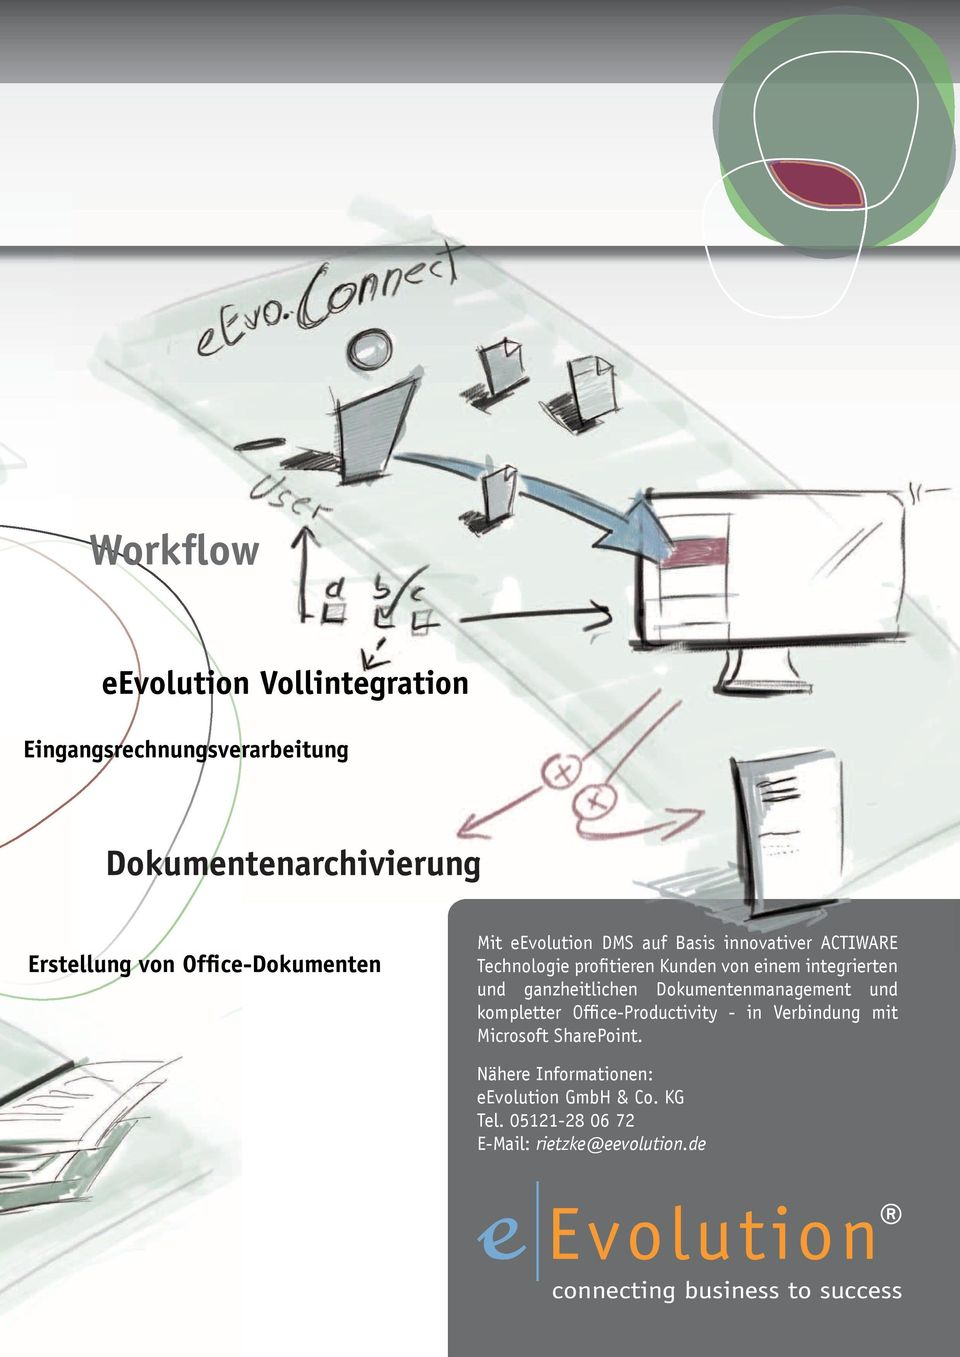 kompletter Office-Productivity - in Verbindung mit Microsoft SharePoint.